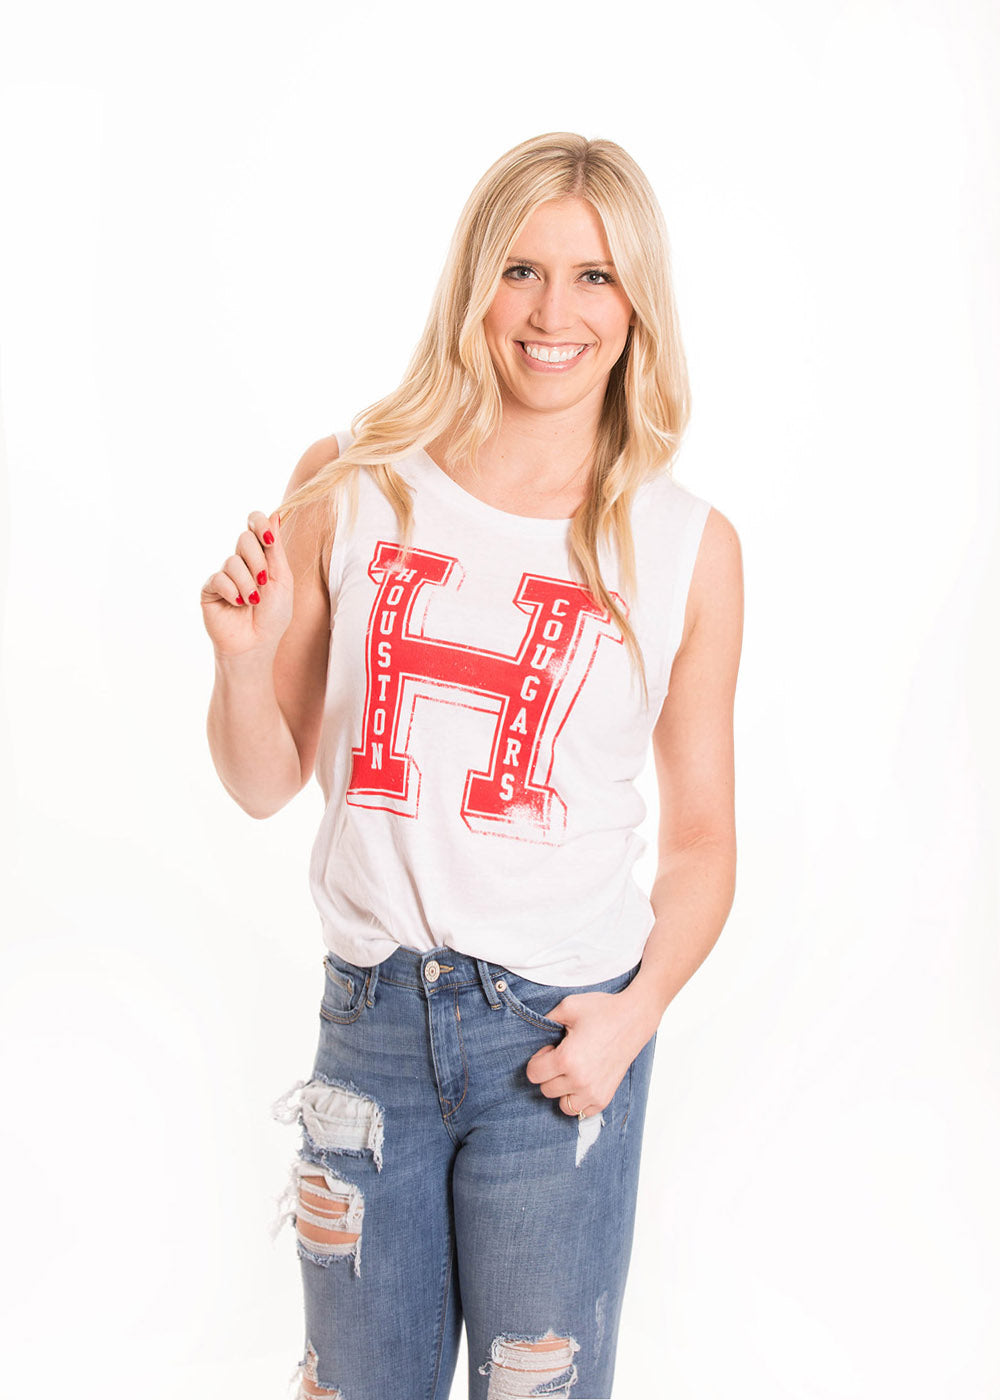 UNIVERSITY OF HOUSTON Cougars Women's Muscle Tank